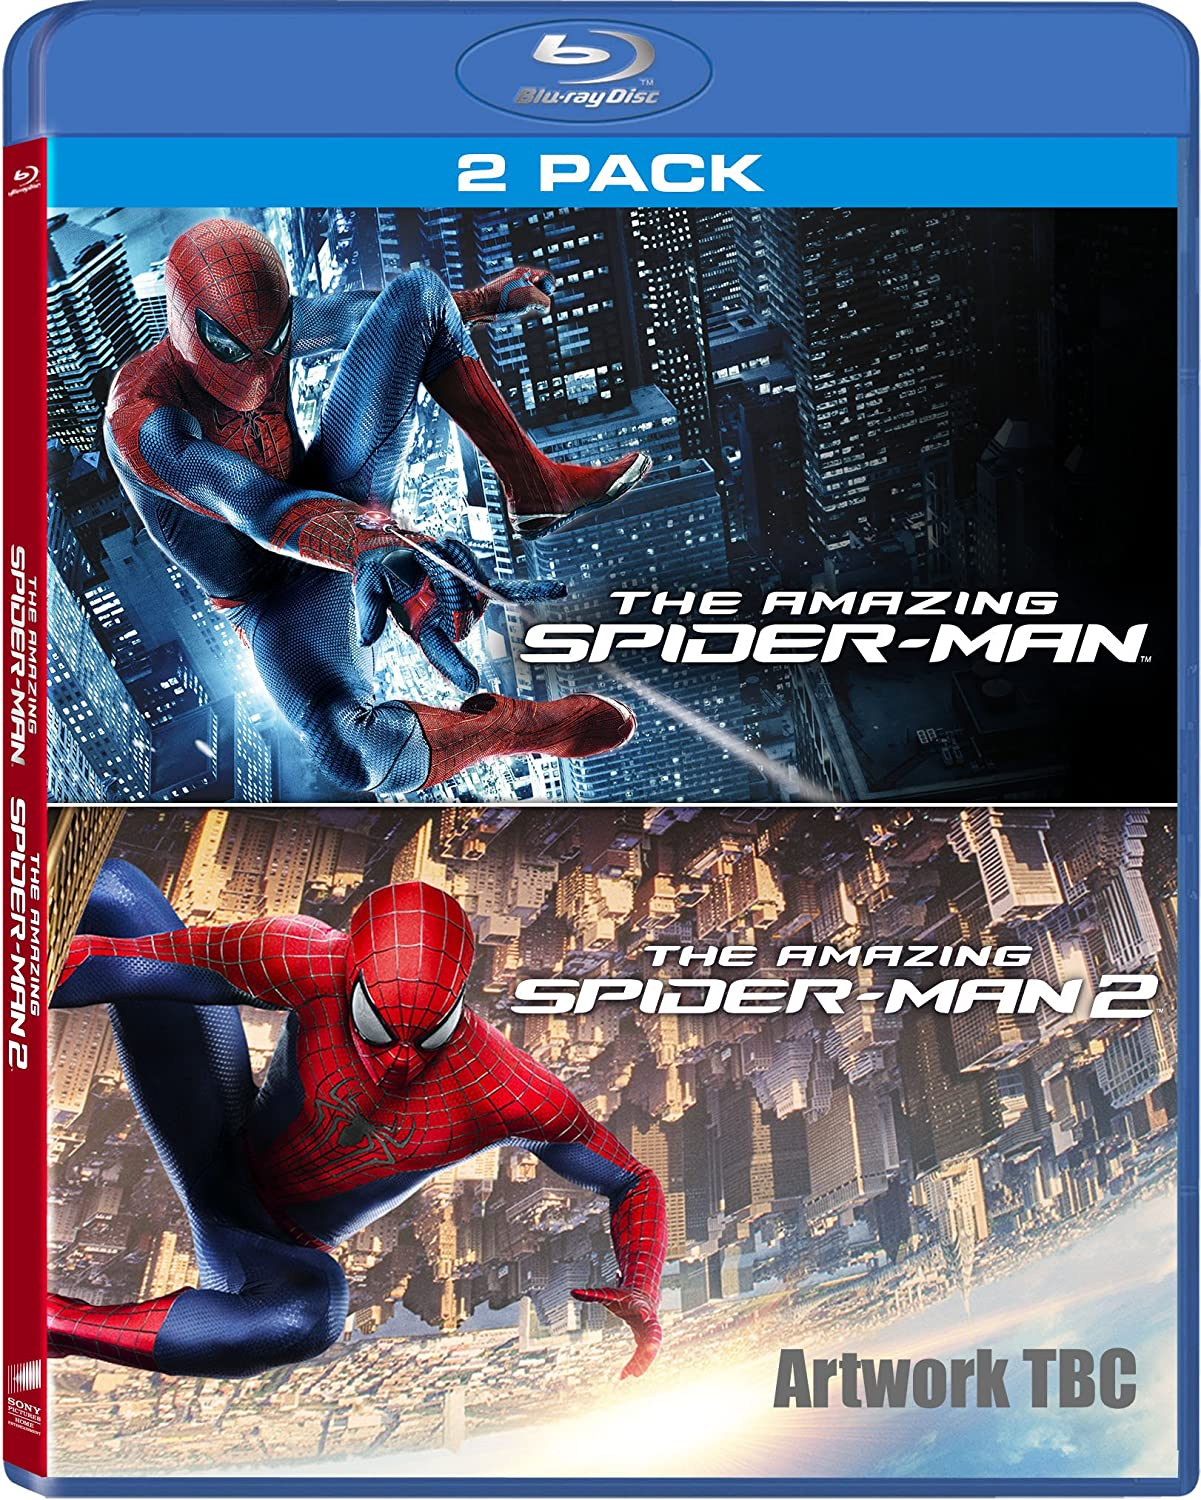 The amazing spider man 2 blu ray